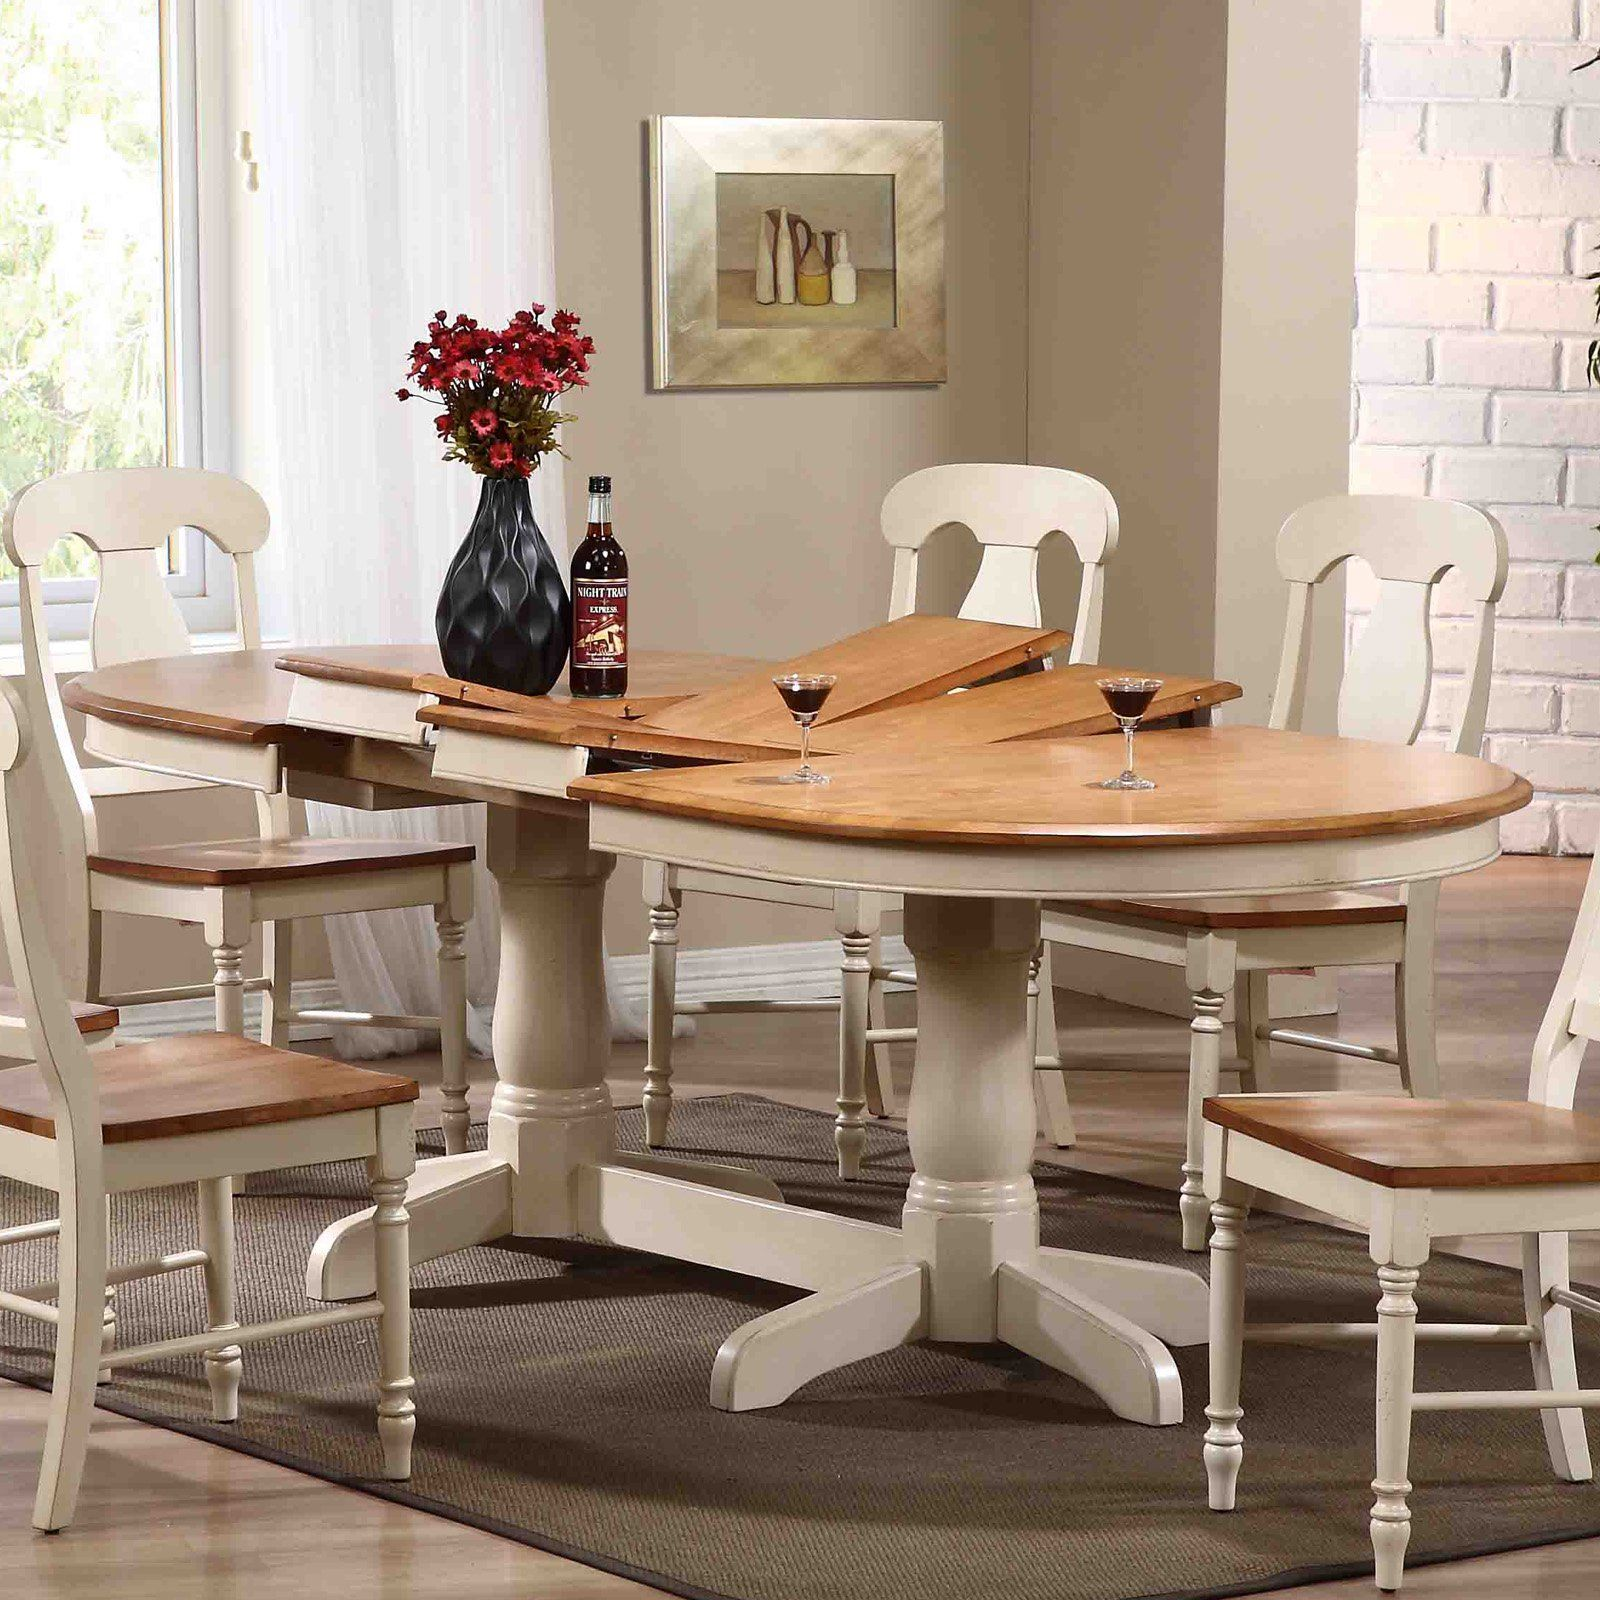 Country Kitchen Table And Chairs: Iconic Furniture Oval Pedestal Dining Table In 2019